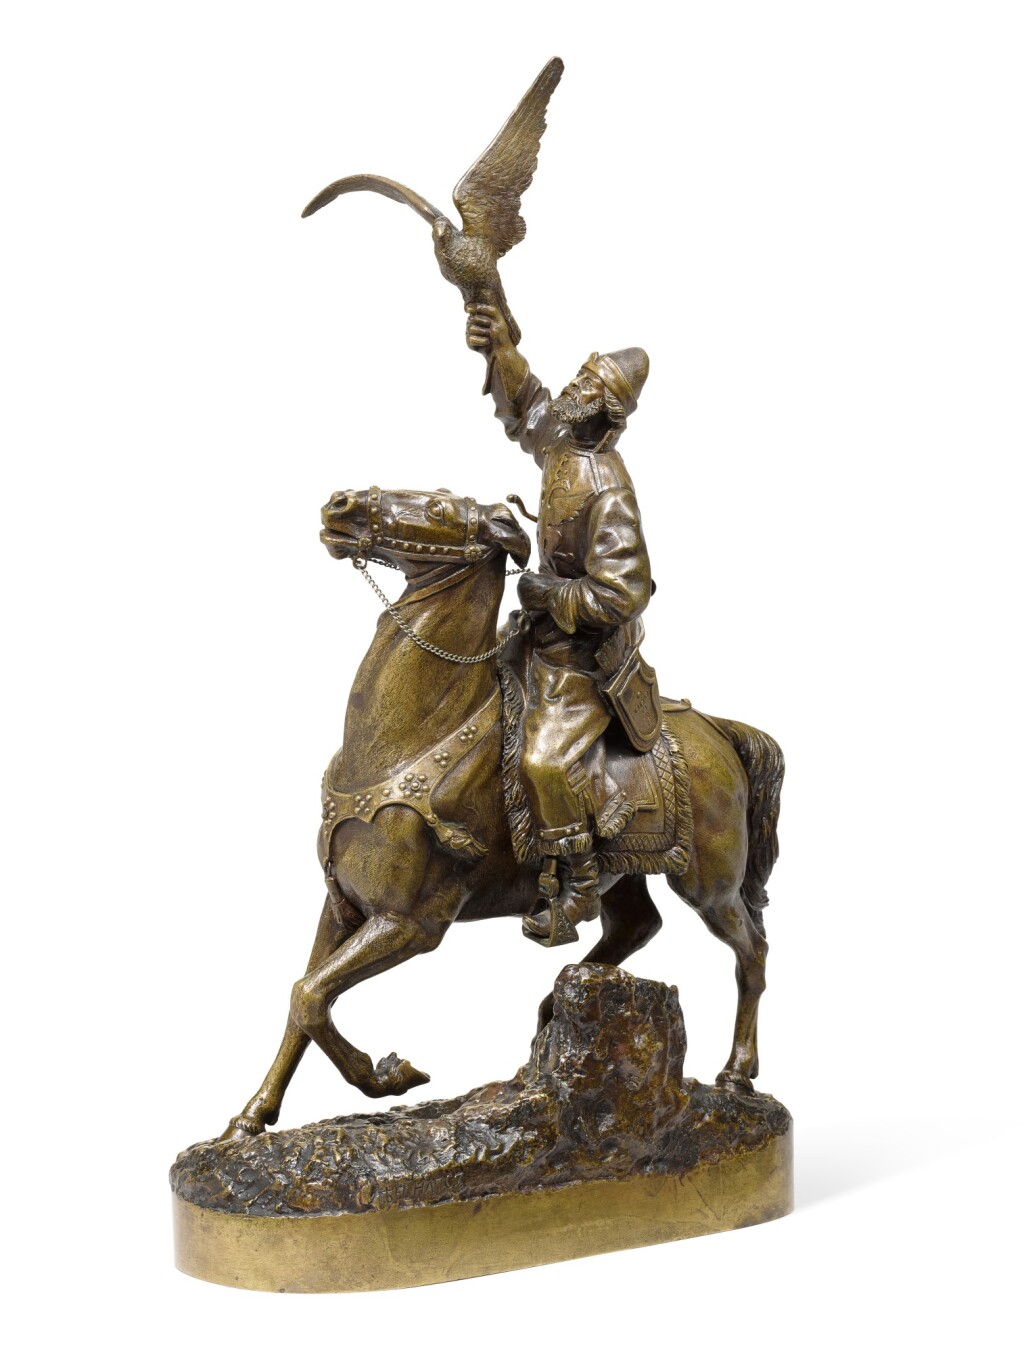 TSAR'S FALCONER: A SMALL BRONZE FIGURE, CAST BY WOERFFEL AFTER THE MODEL BY EVGENY NAPS